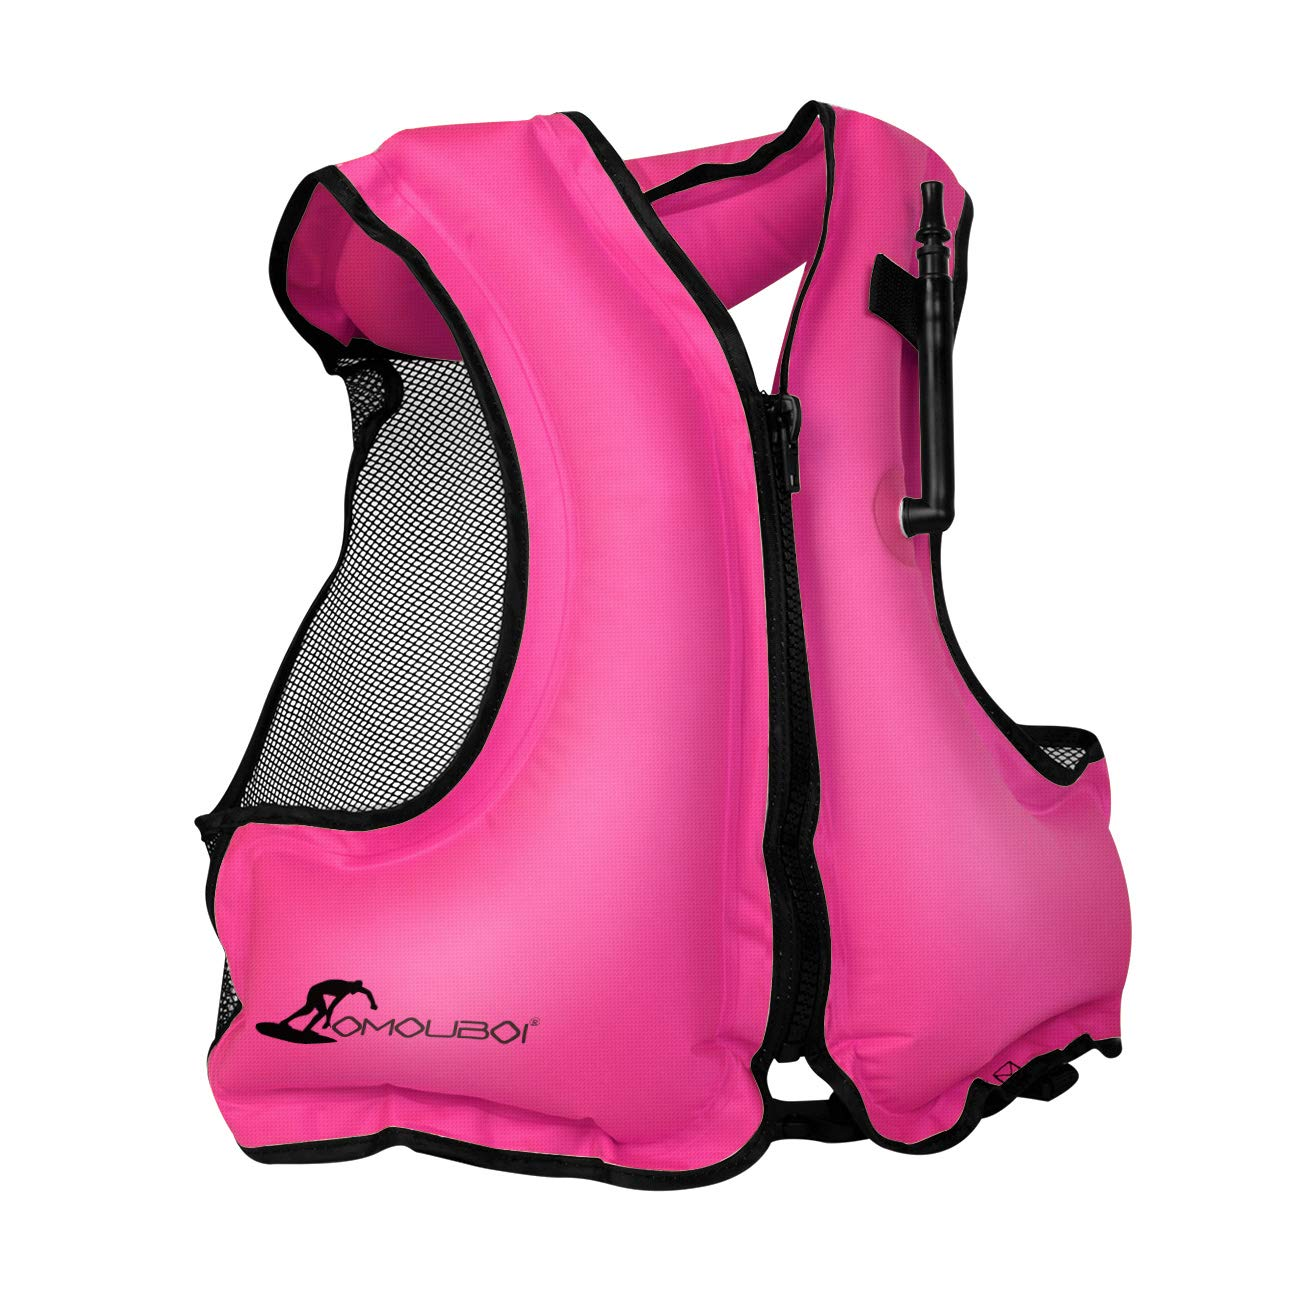 OMOUBOI Adult Snorkel Vest Inflatable with Leg Straps for Men Women Life Jactket for Snorkeling Diving Swimming-2019 New Packaging(Pink) by OMOUBOI